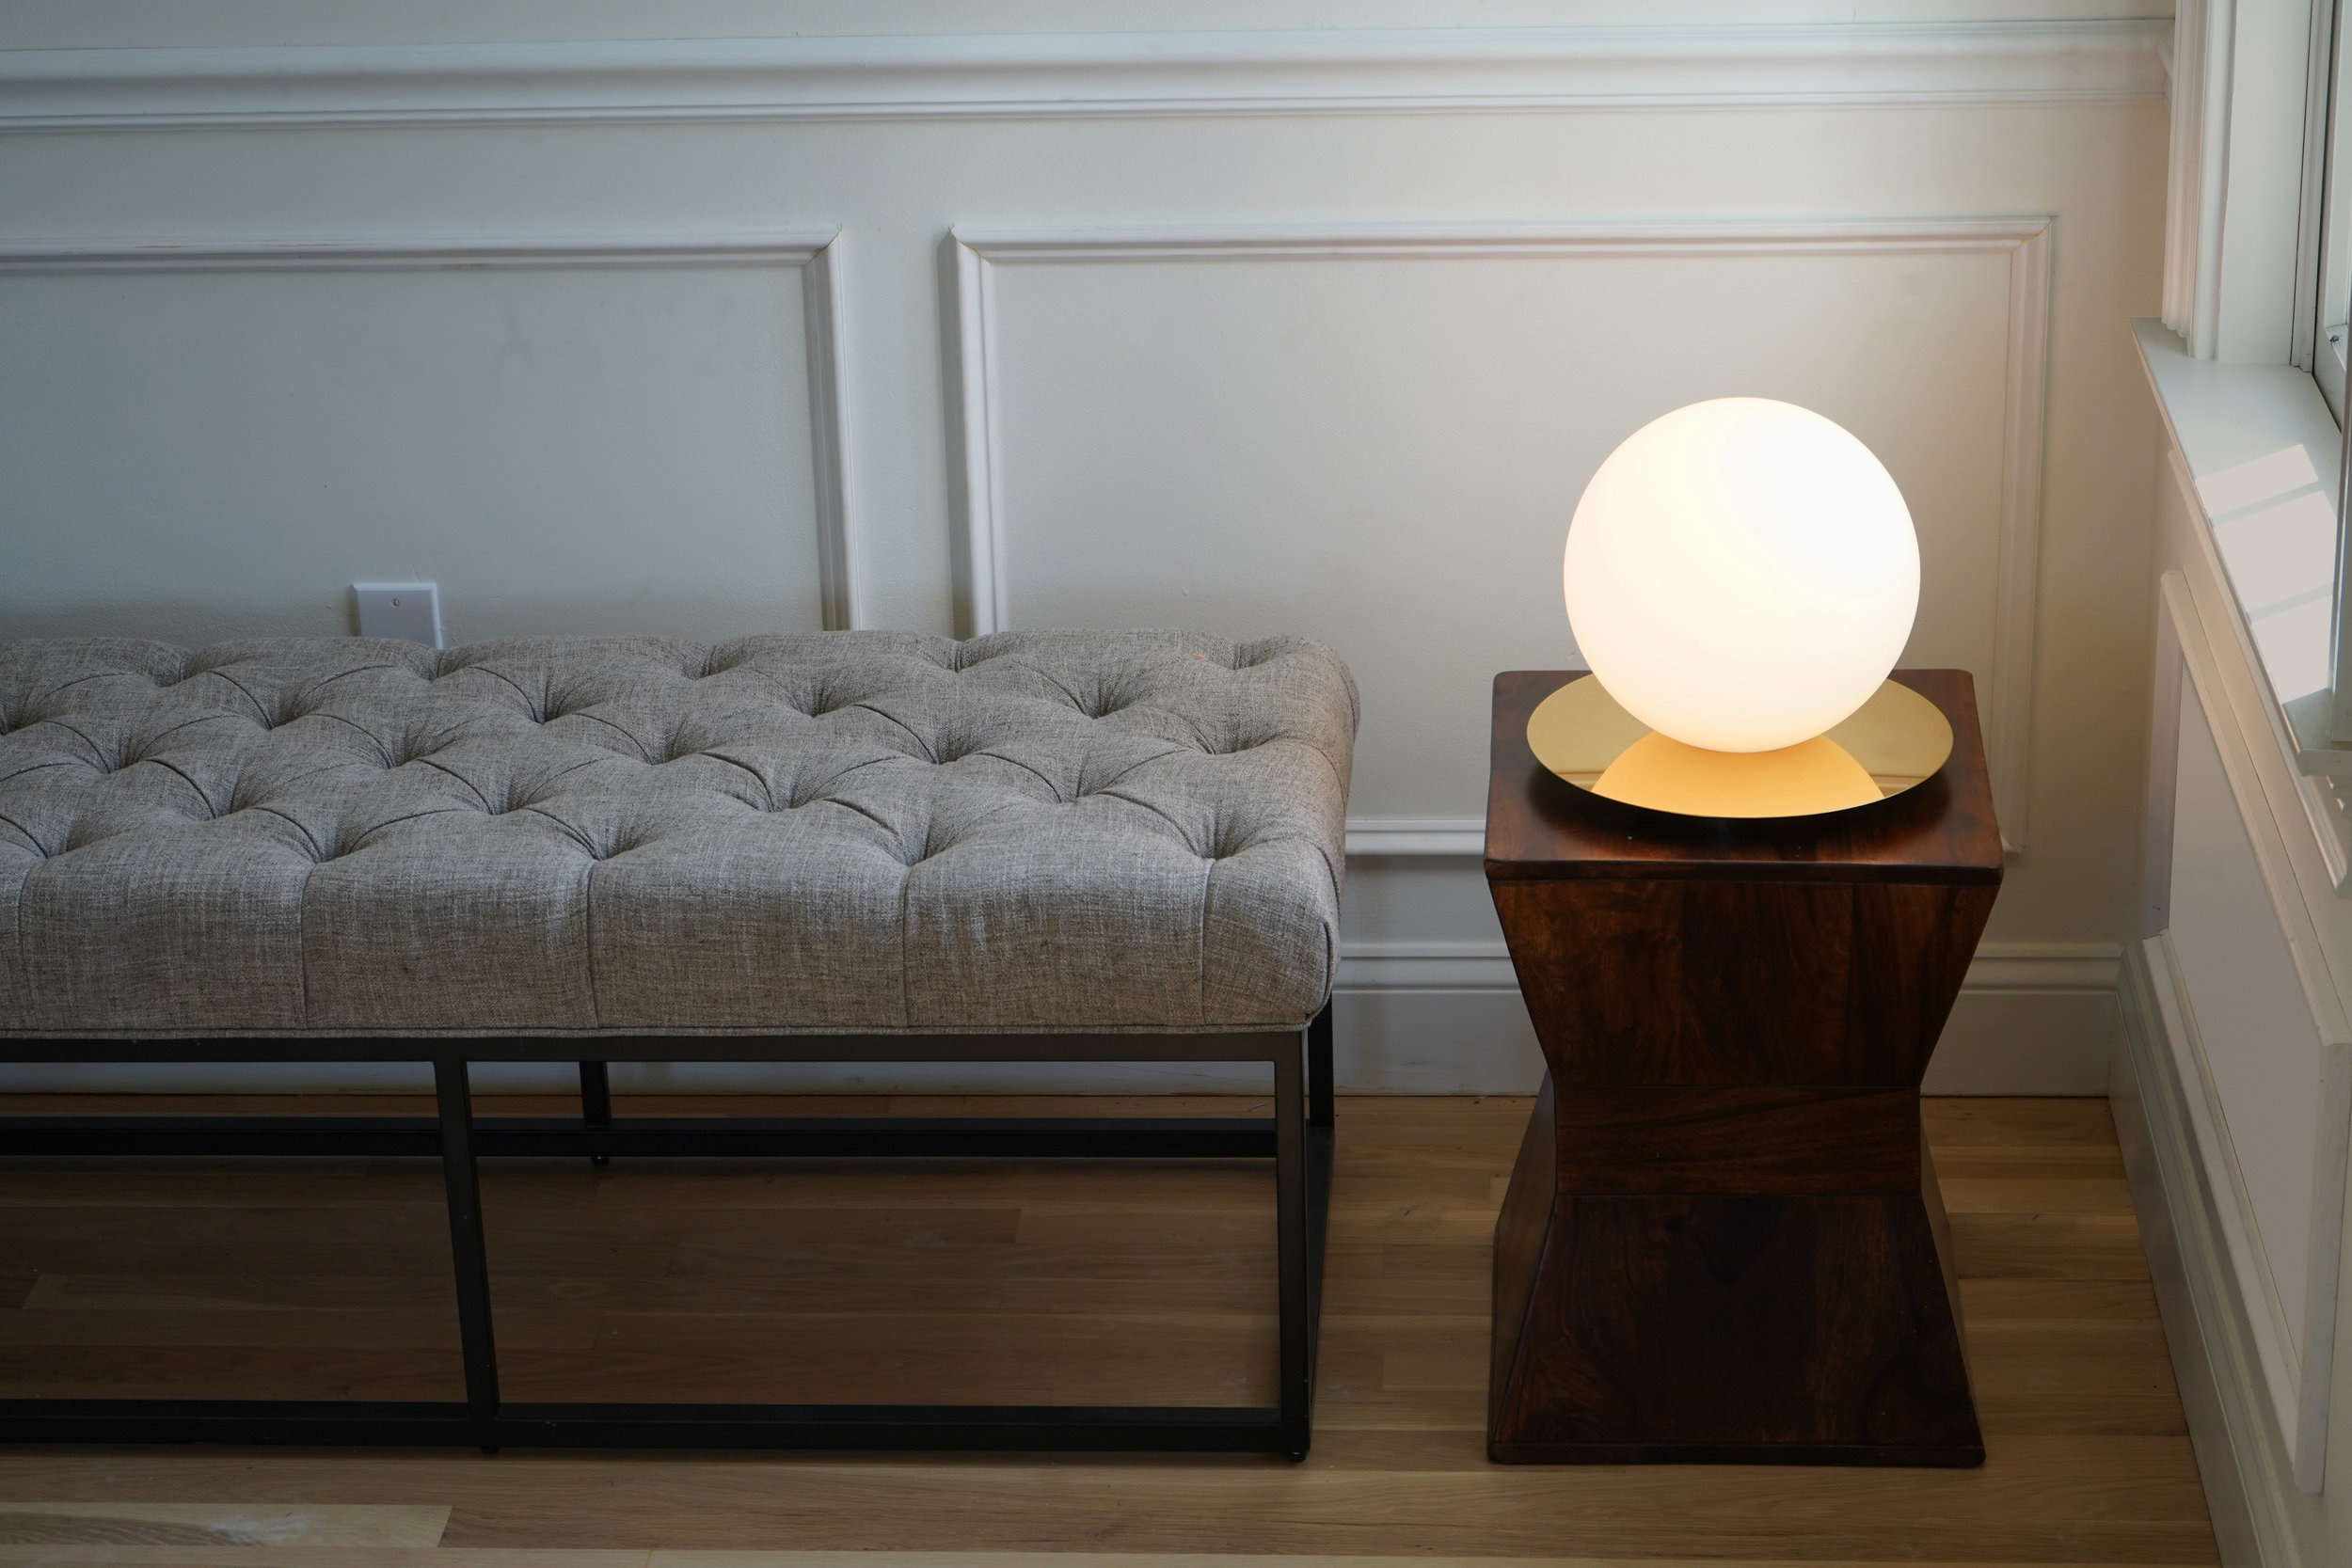 Bola Sphere Table, Evironmental, wooden table bench_300.jpg